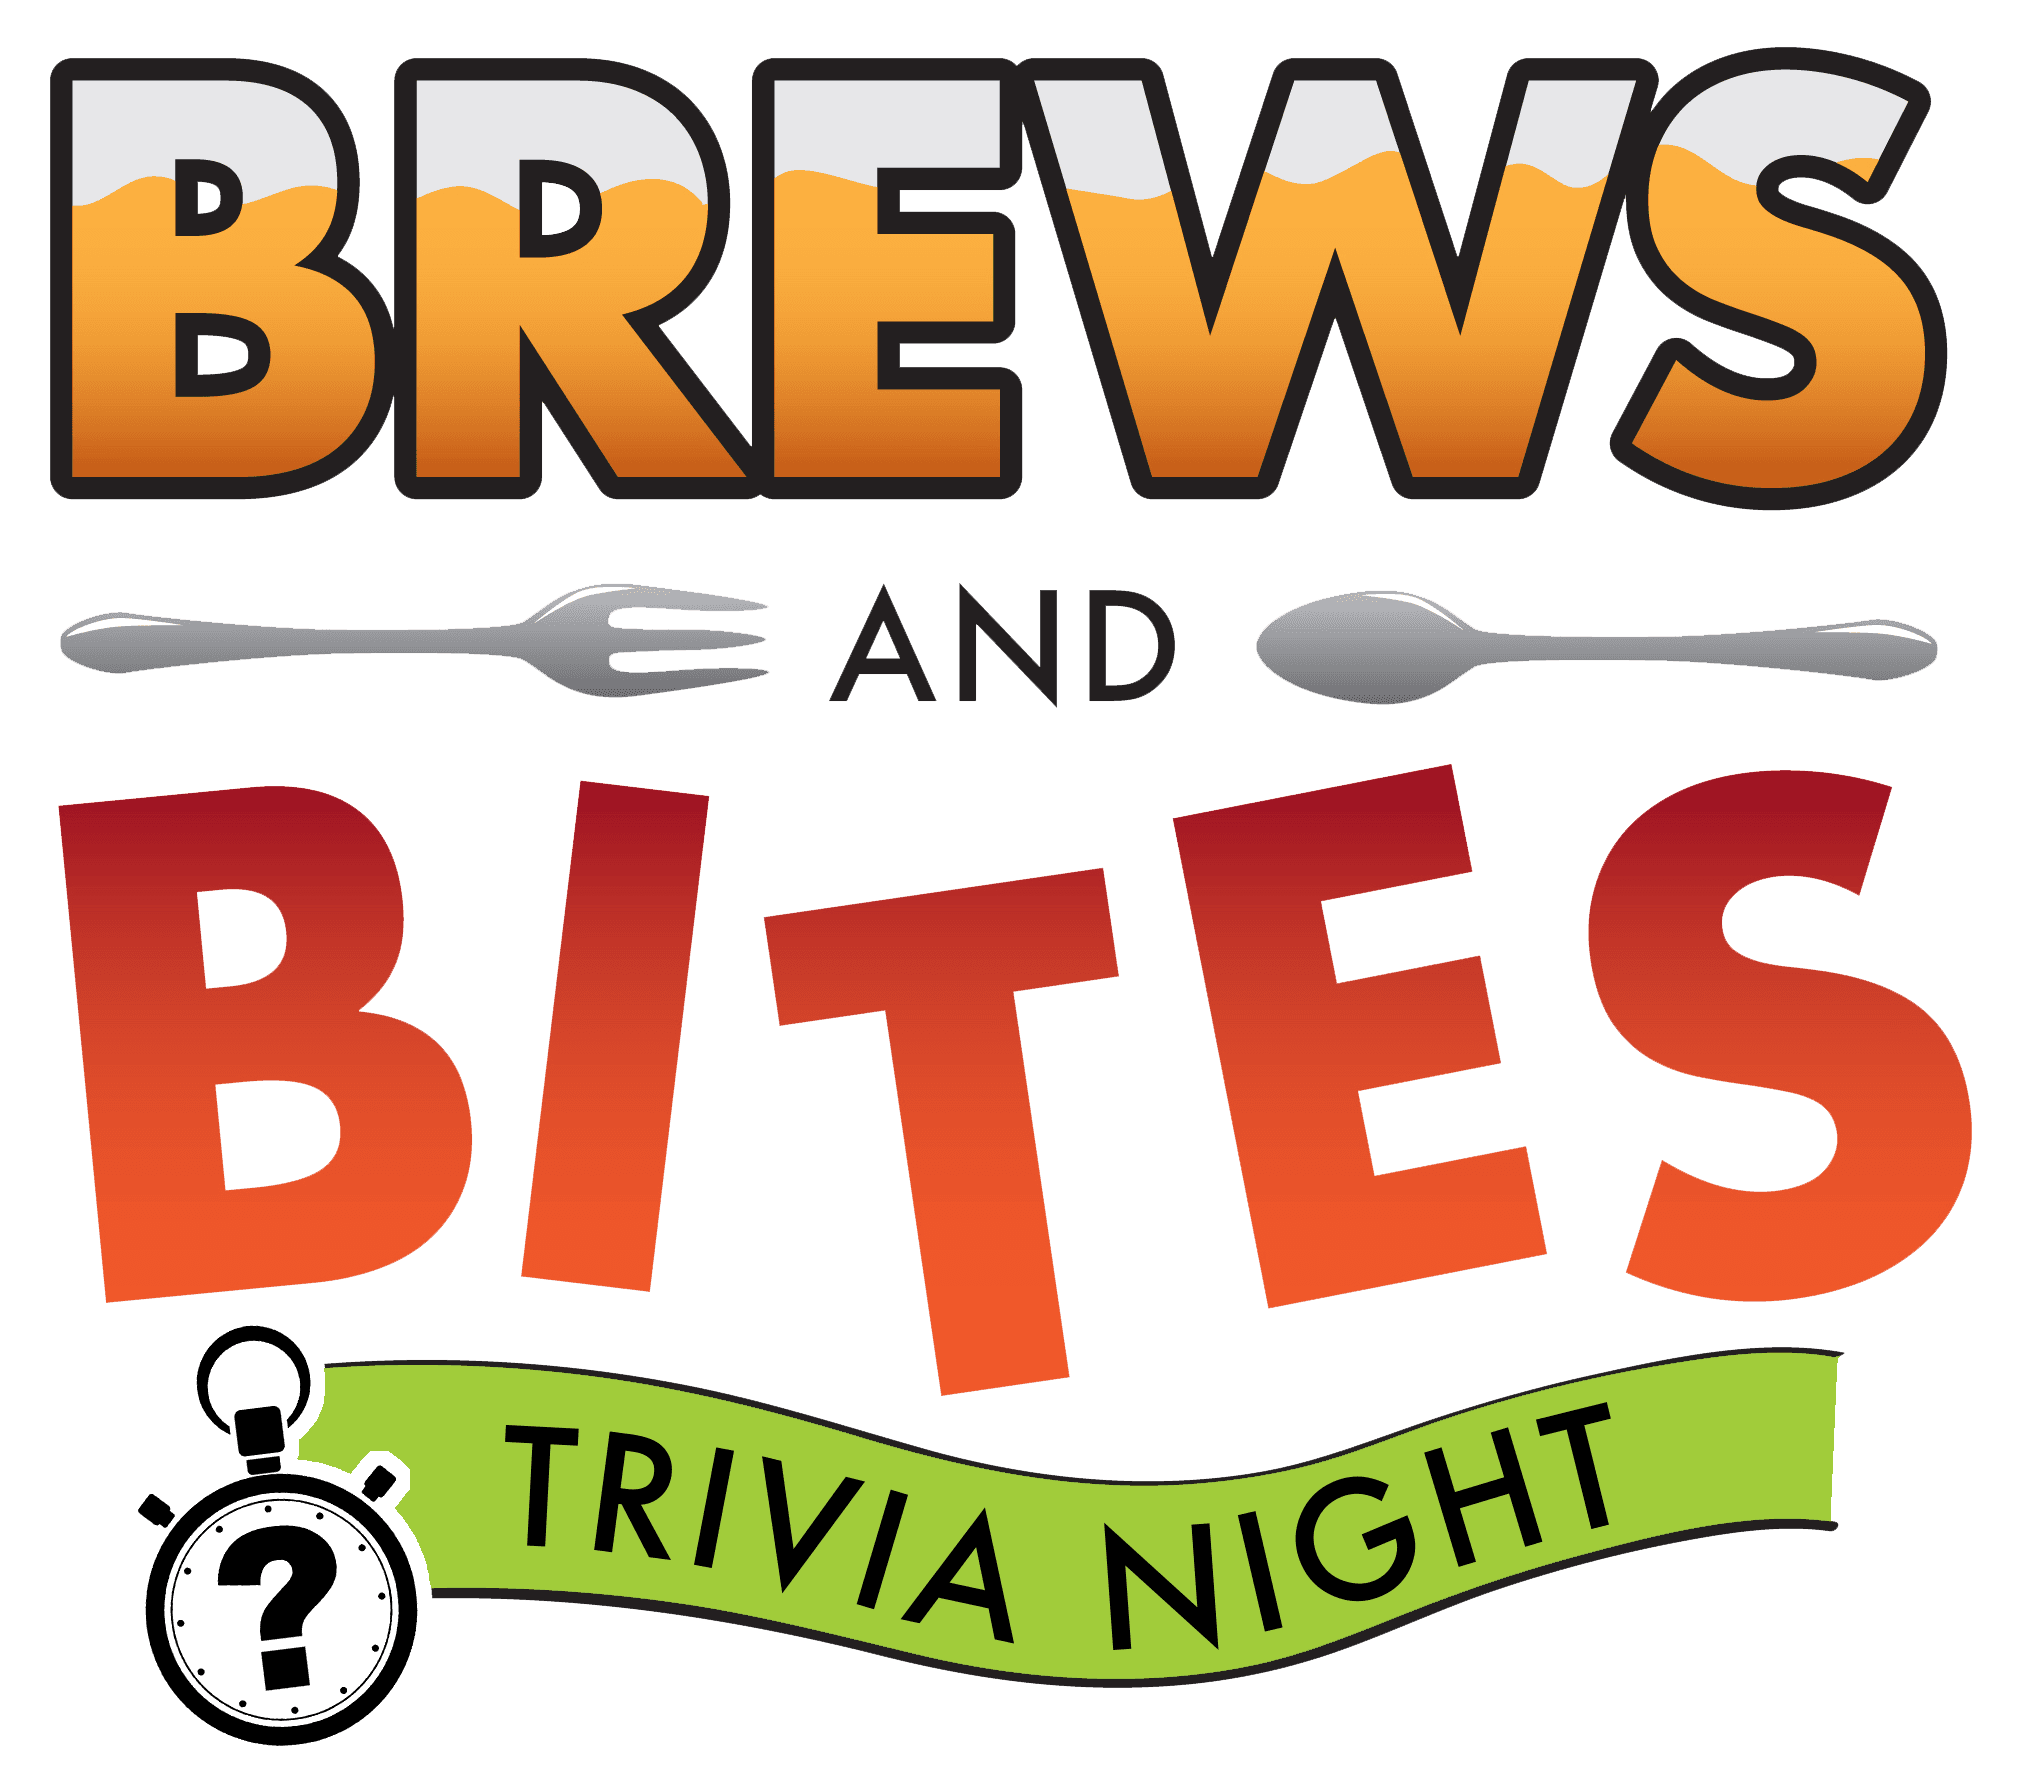 Brews and Bites Trivia Night